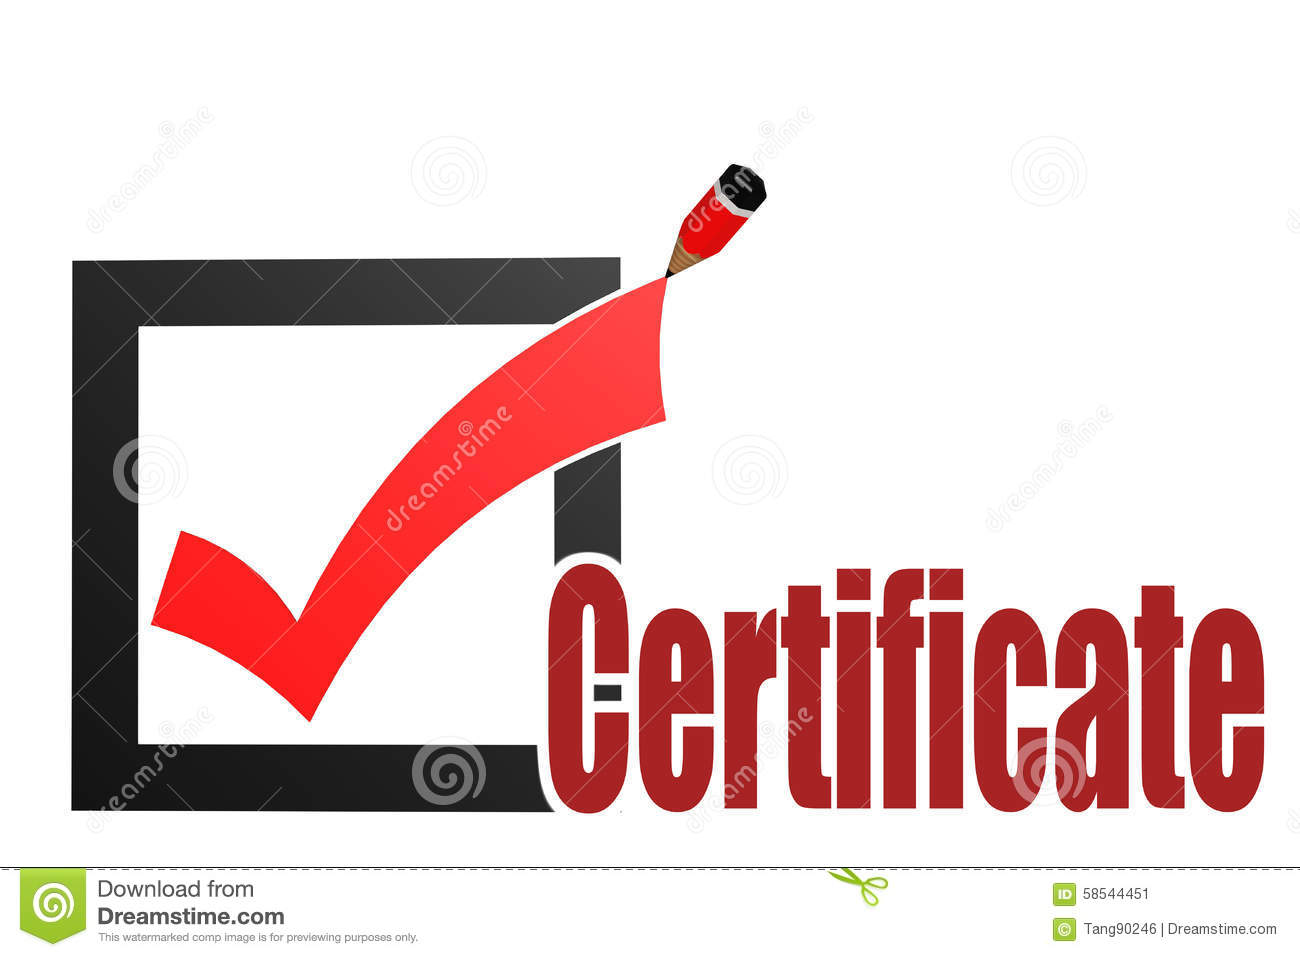 Doc1280720 How to Make Certificates in Word making – Make a Certificate in Word